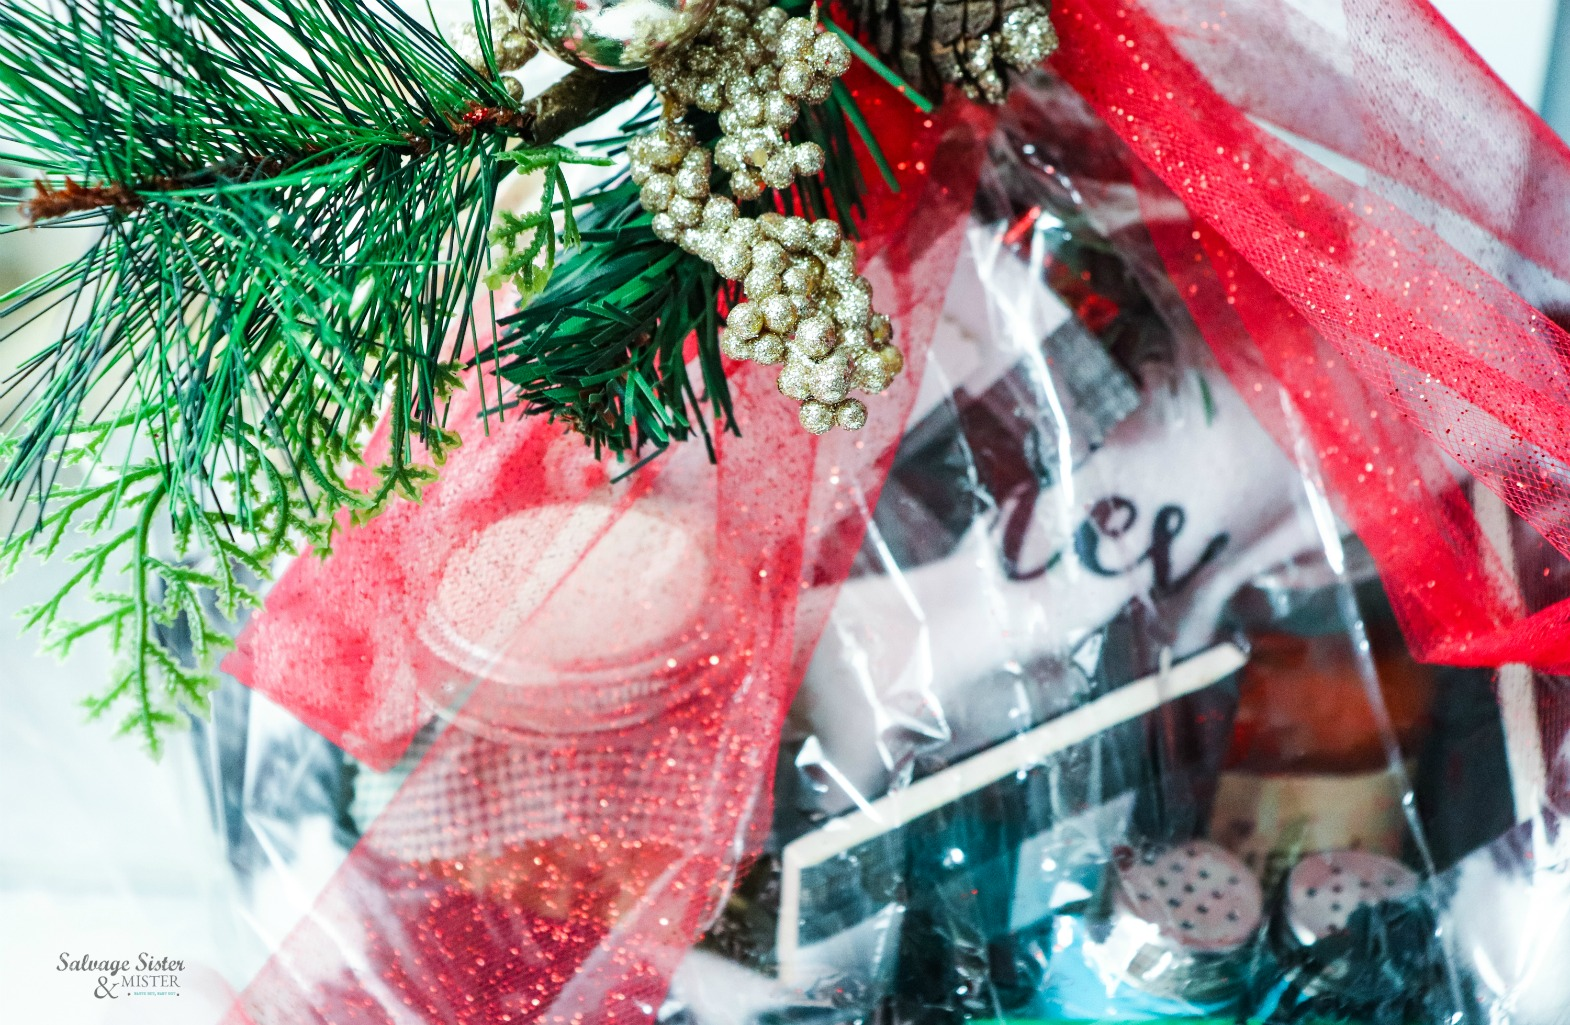 gifts to give this holiday season - Italian Dinner Gift Basket on salvagesisternadmister.com